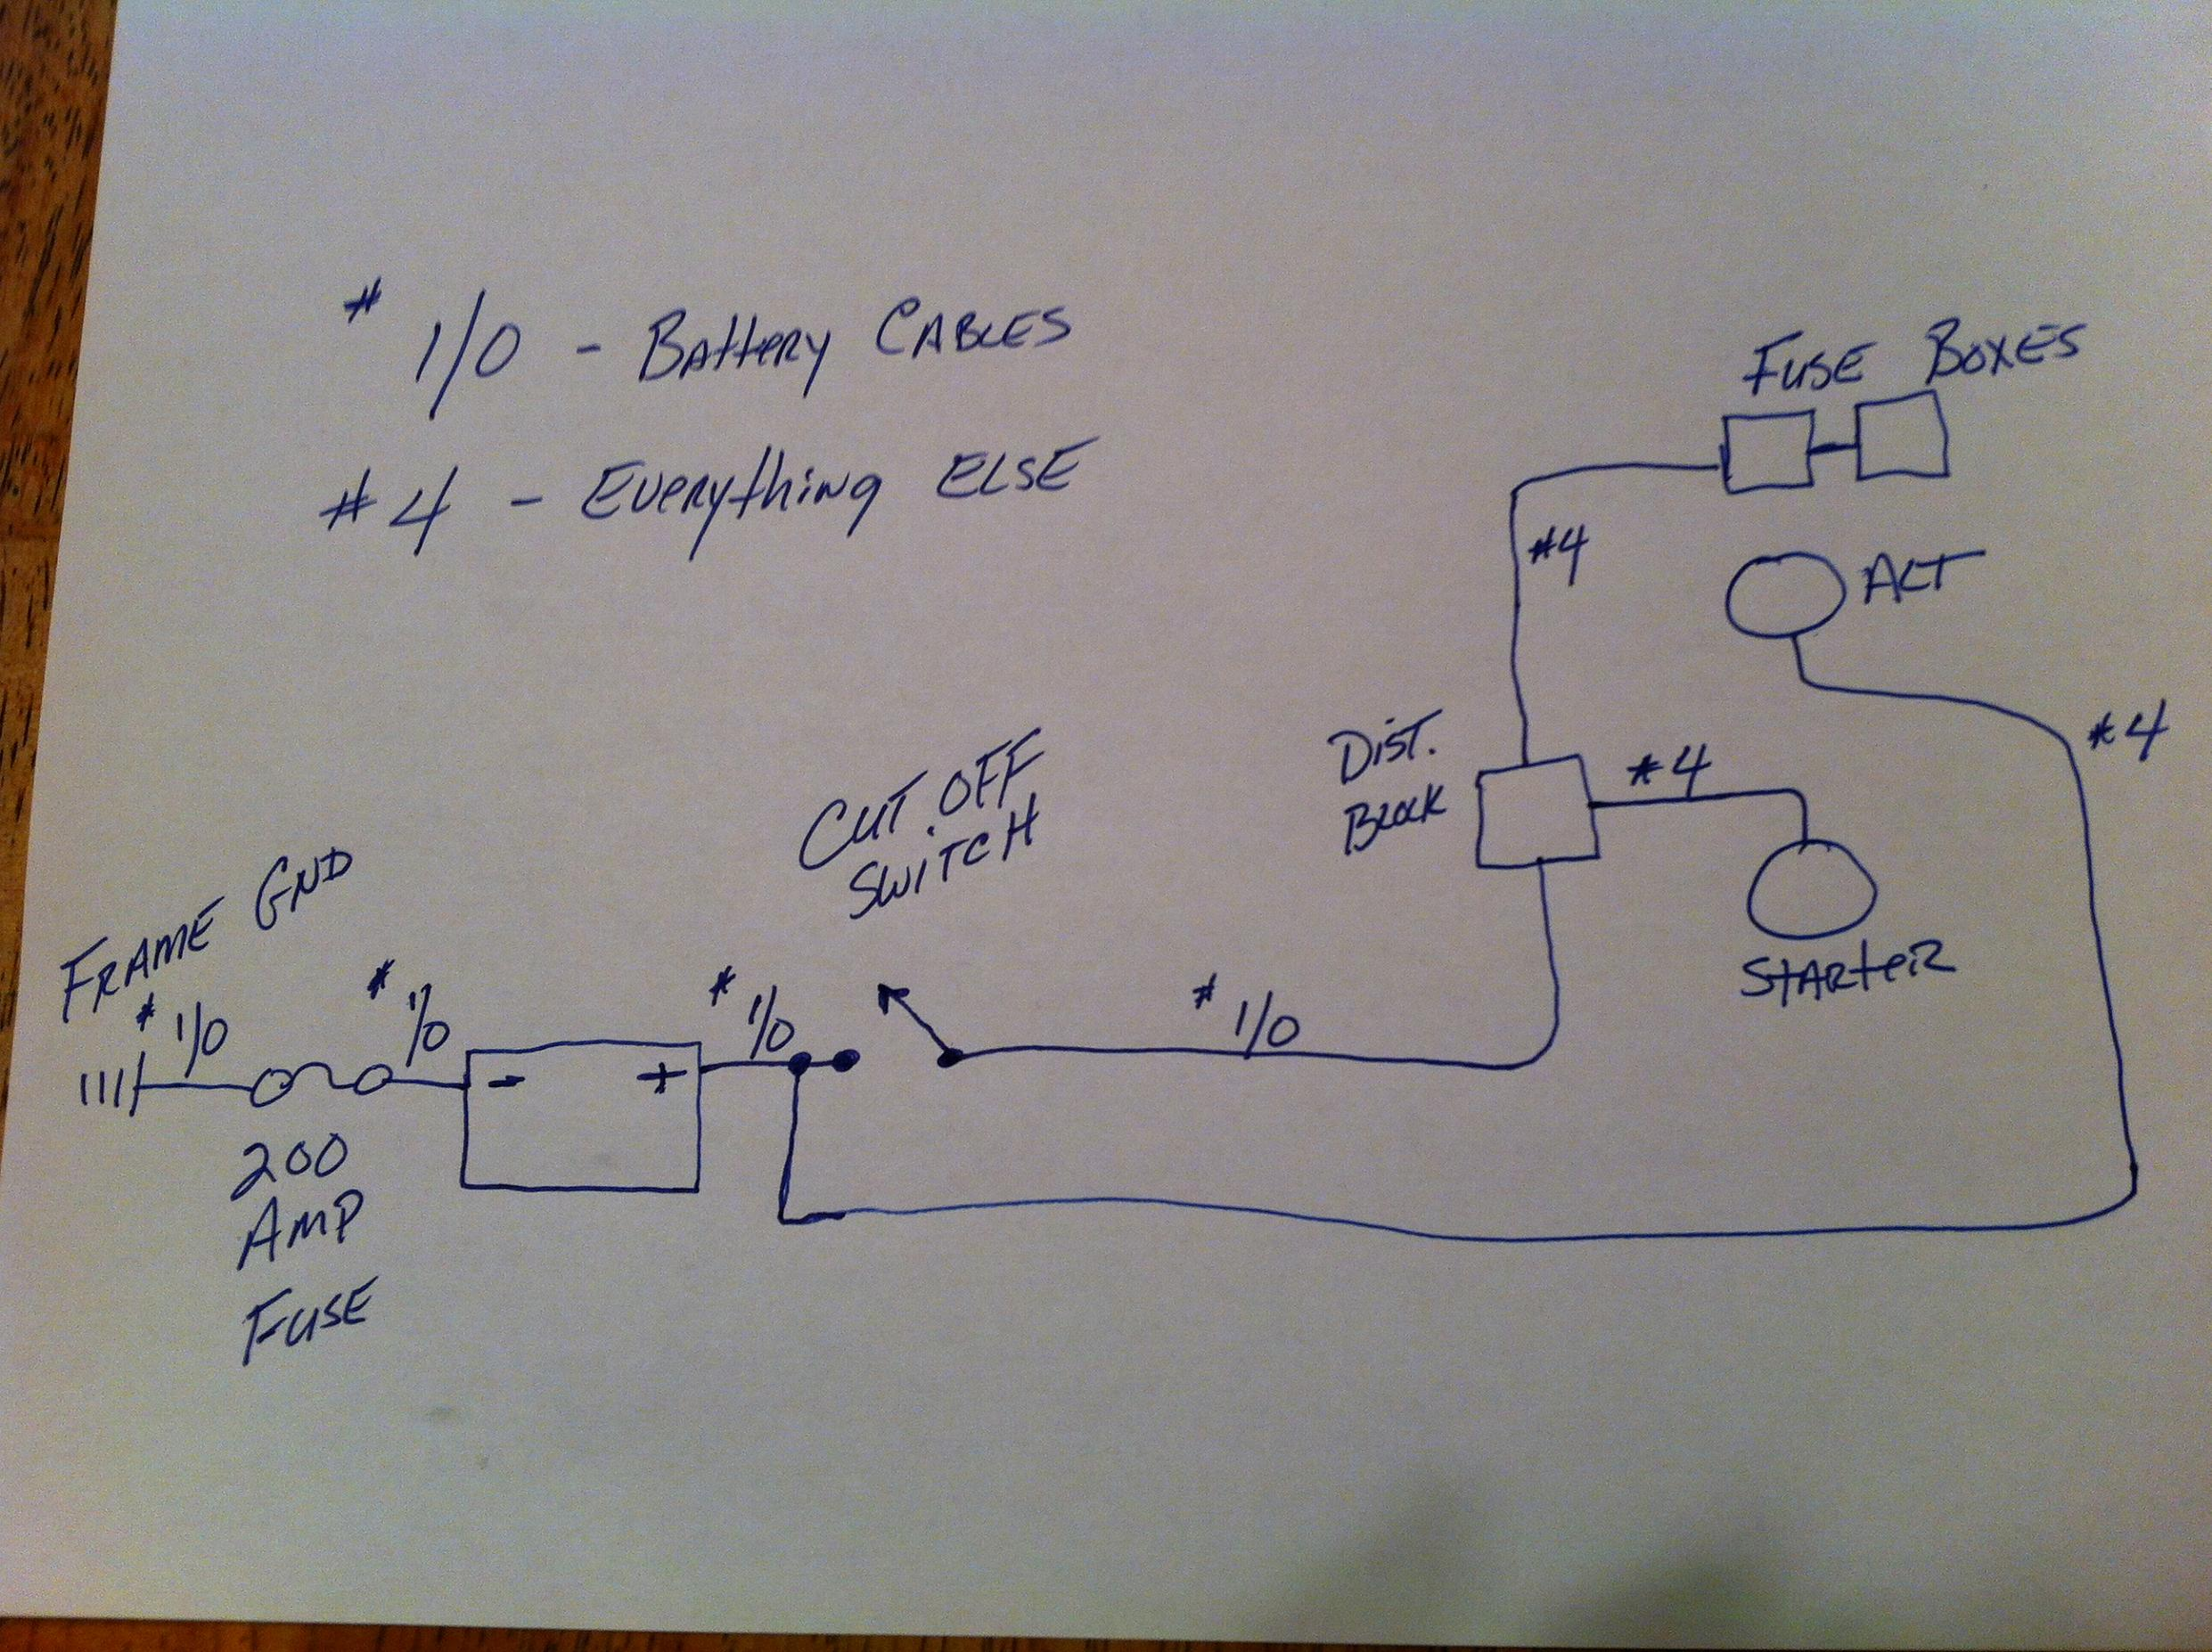 Here S A Wiring Diagram For Reference